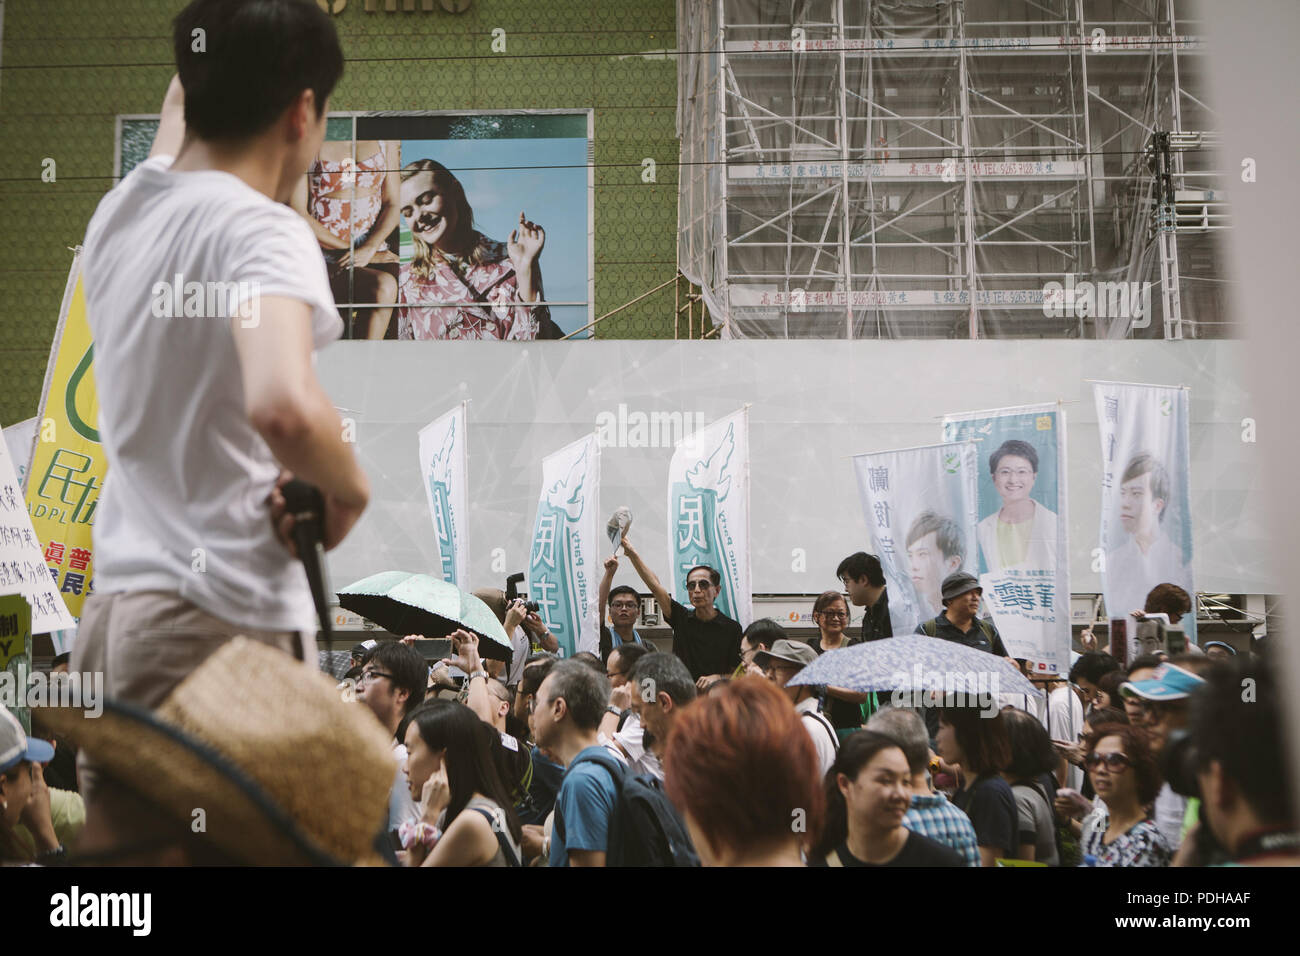 Hong Kong, Hong Kong. 1st July, 2017. People seen holding posters during the protest.Thousands came together and demonstrated to mark the 20th anniversary of the Handover from Britain to China, Hong Kong's return to China on July 1st 1997. The protestors marched through sun and rain from Victoria Park to Admiralty, taking a stand on a variety of human-rights-related causes. Credit: Viola Gaskell/SOPA Images/ZUMA Wire/Alamy Live News - Stock Image